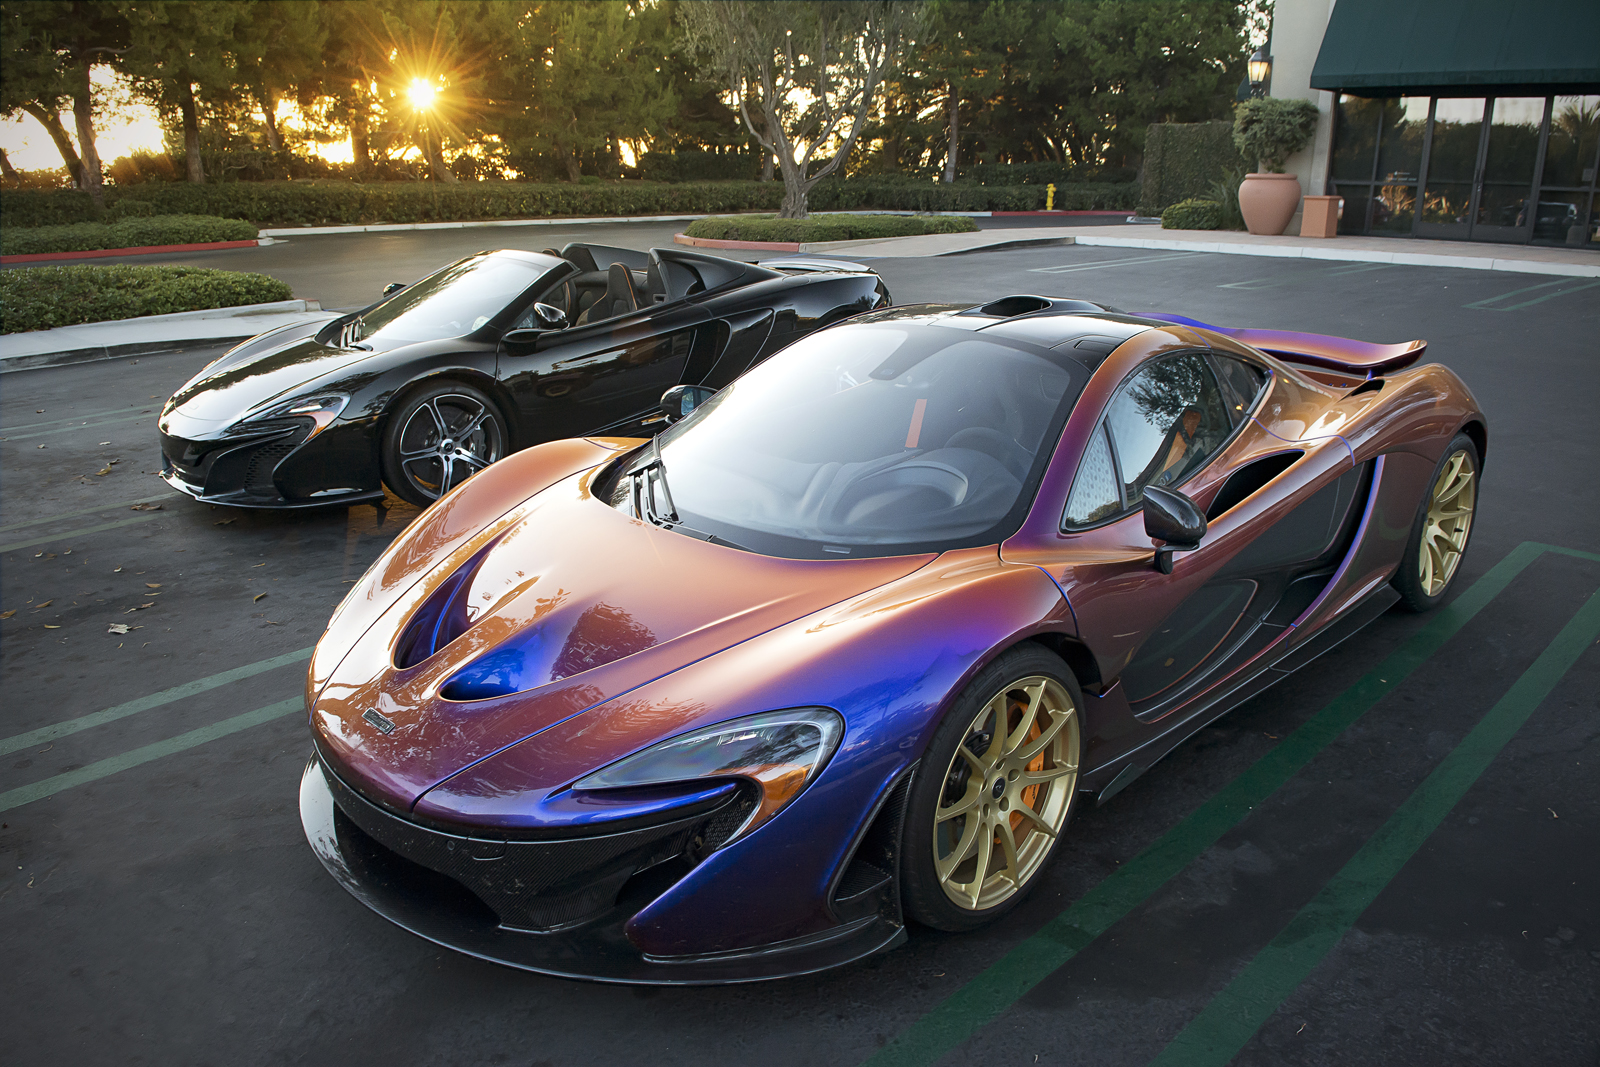 Color car los angeles - Chameleon Mclaren P1